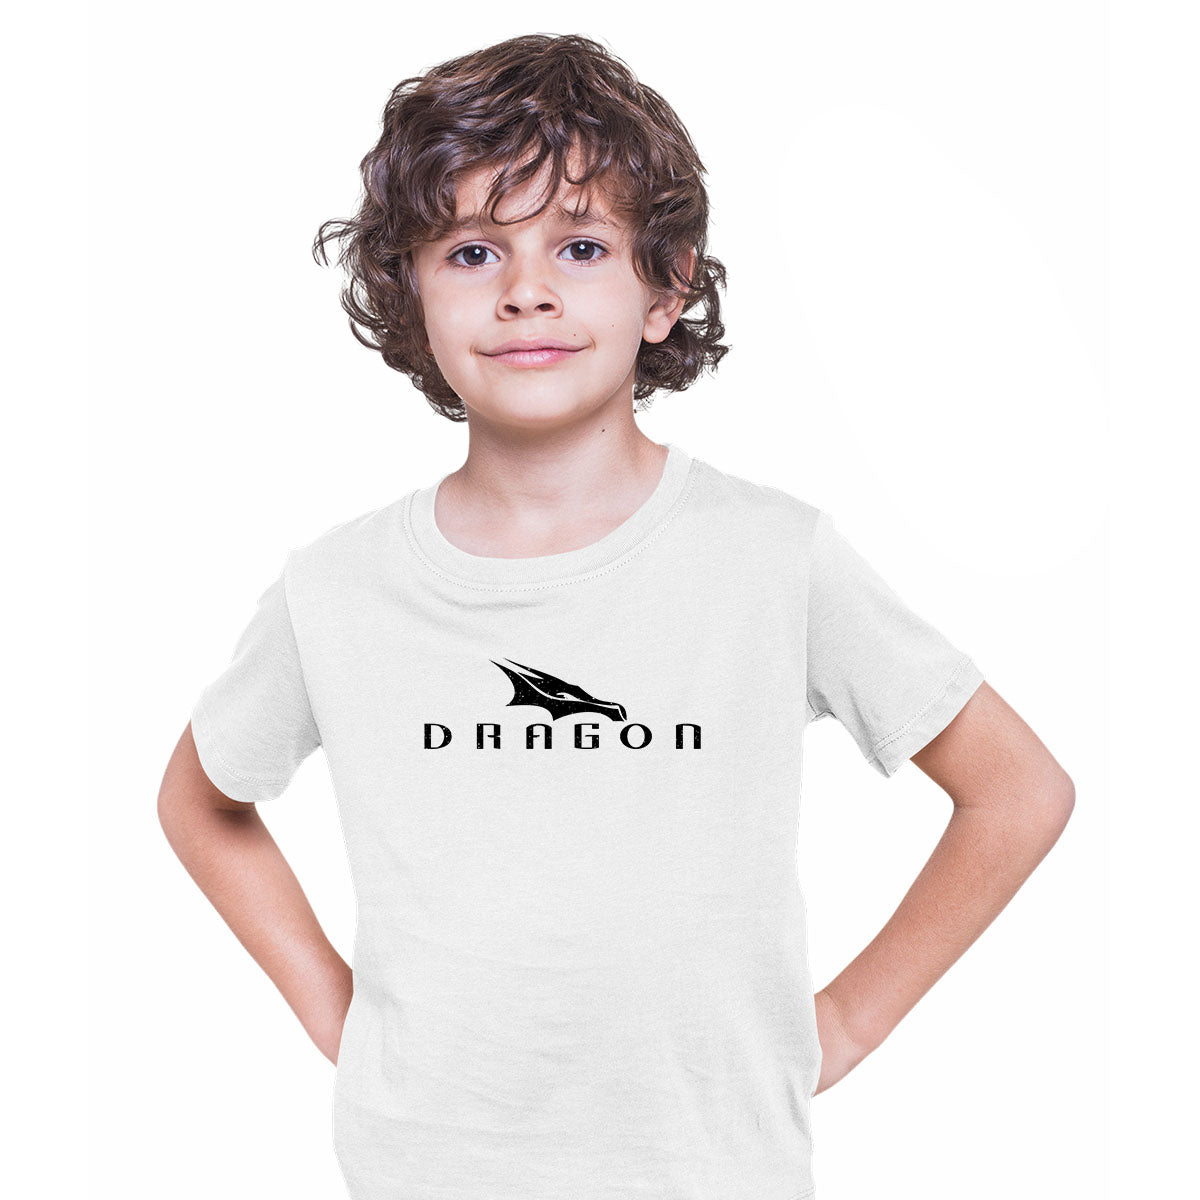 Dragon SpaceX Logo Kids White T-shirt Elon Musk Tesla Space Tech